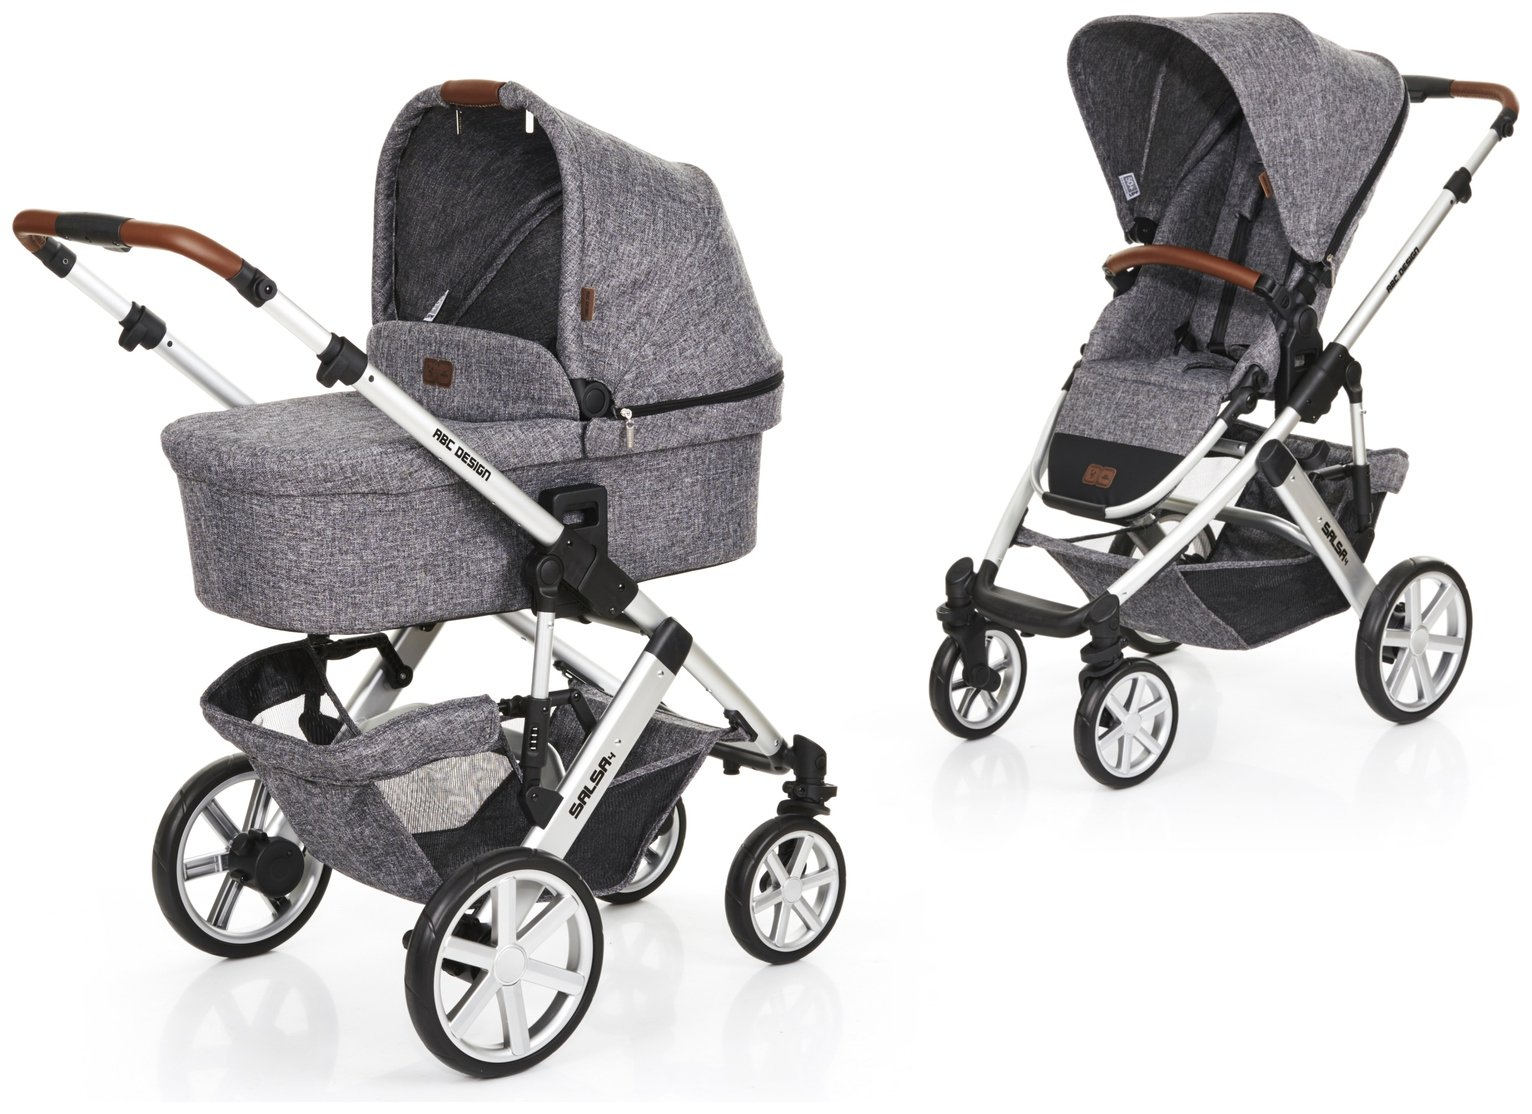 Image of ABC Design Salsa 4 Pushchair and Carrycot - Race Grey